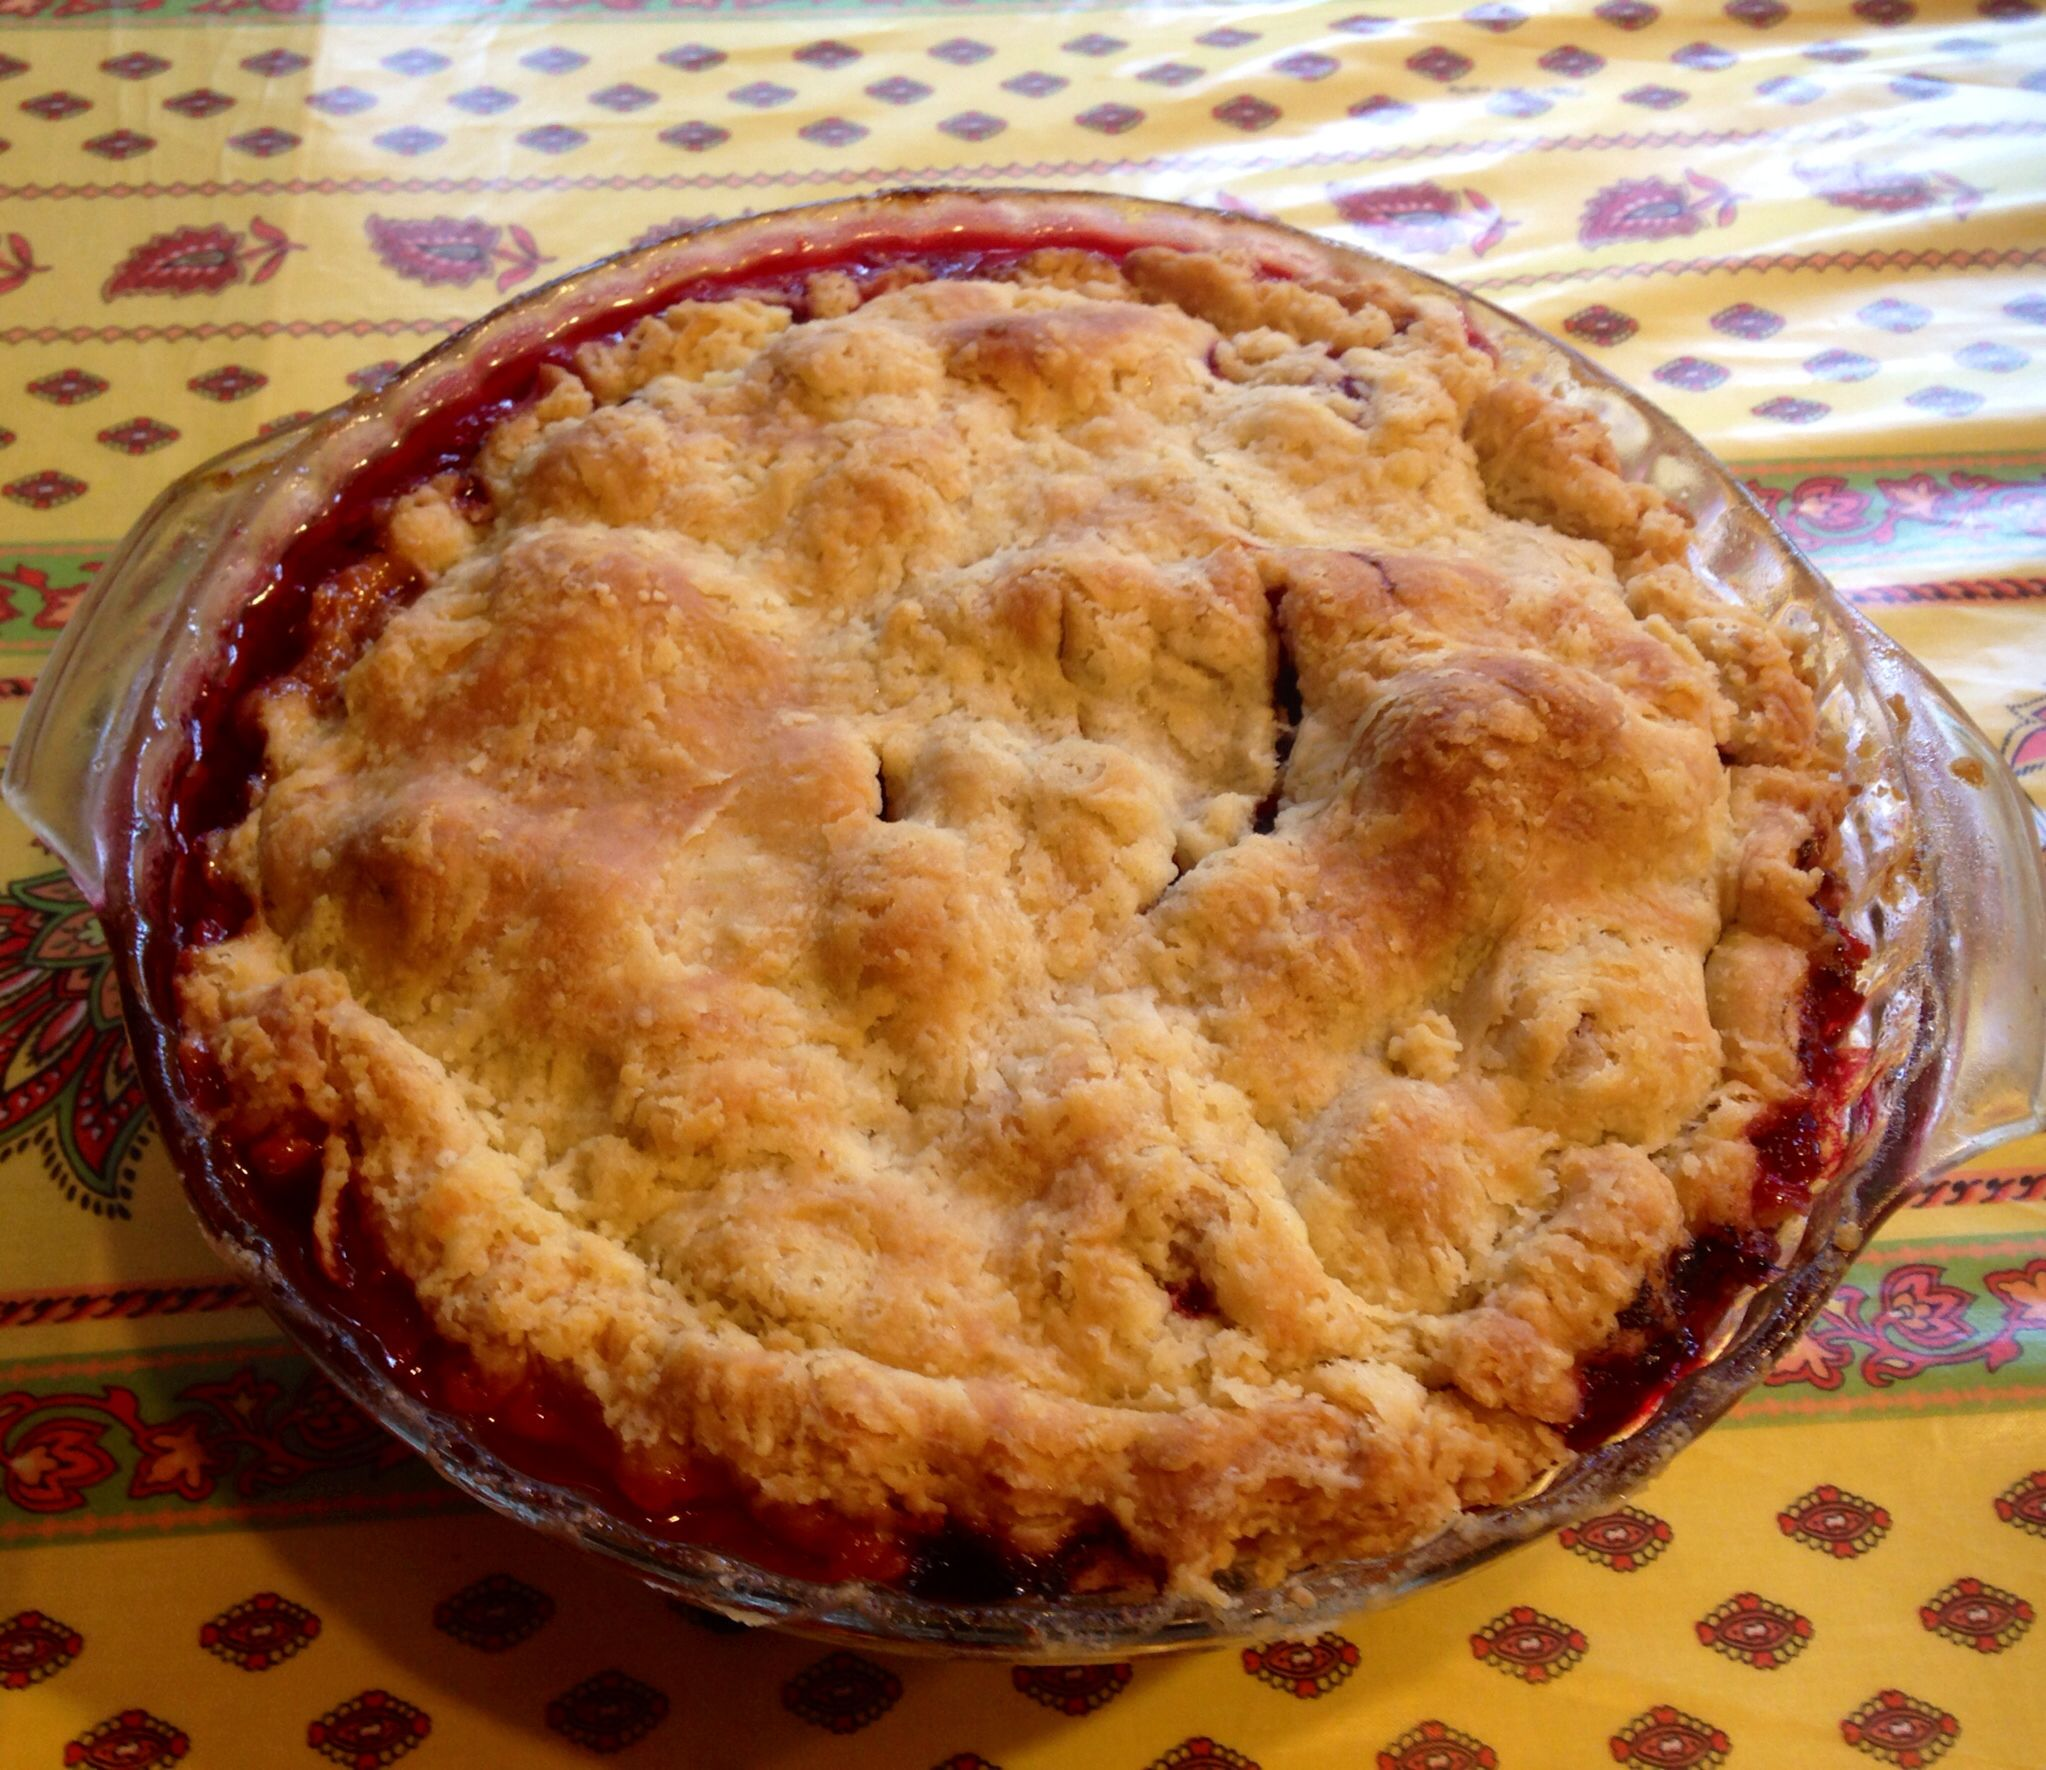 Fresh baked strawberry wild blueberry pie at the cottage